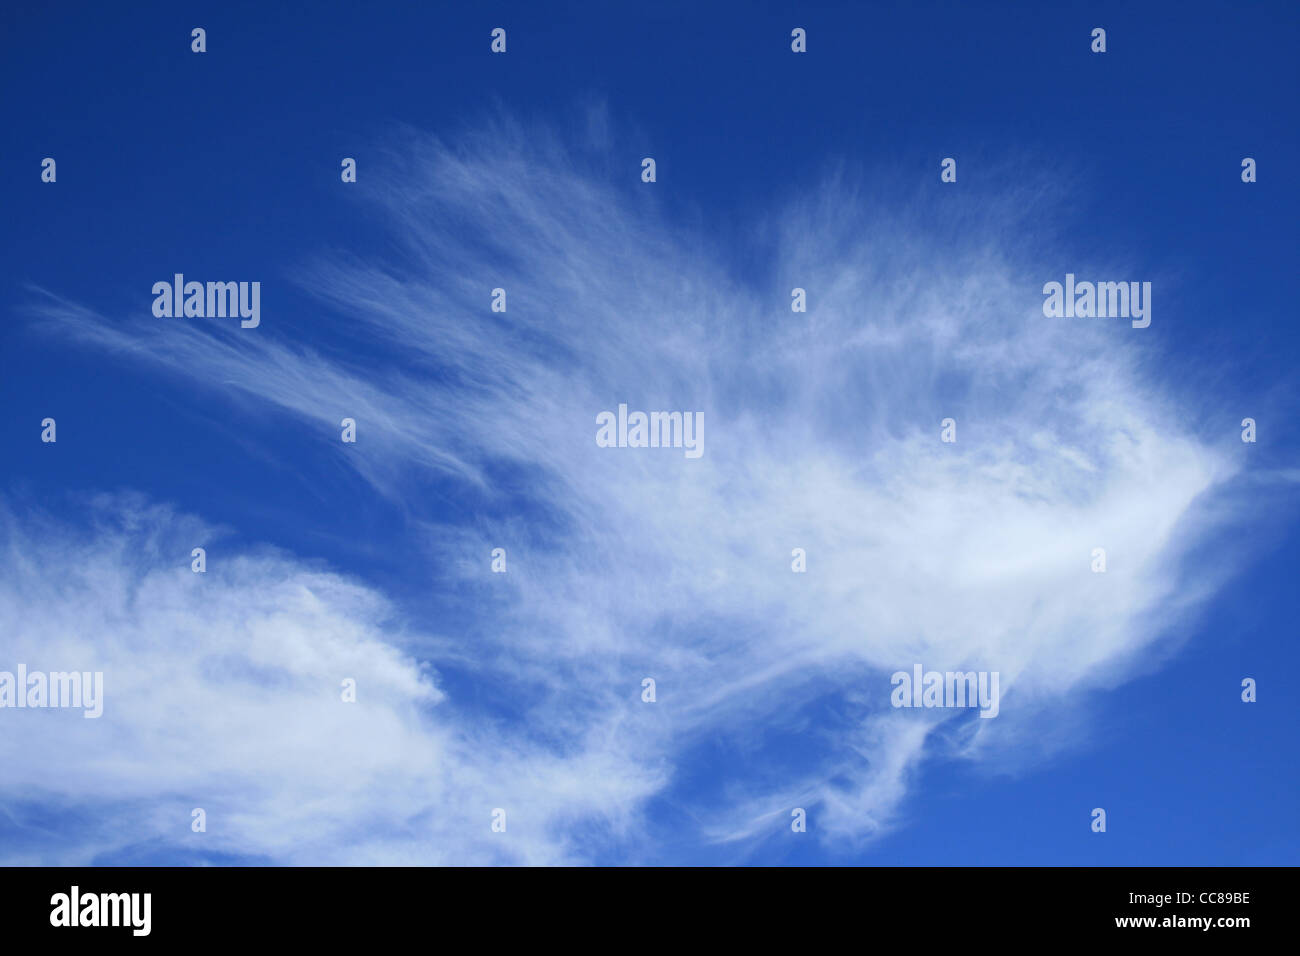 horizontal image of blue sky with wispy white cirrus clouds - Stock Image